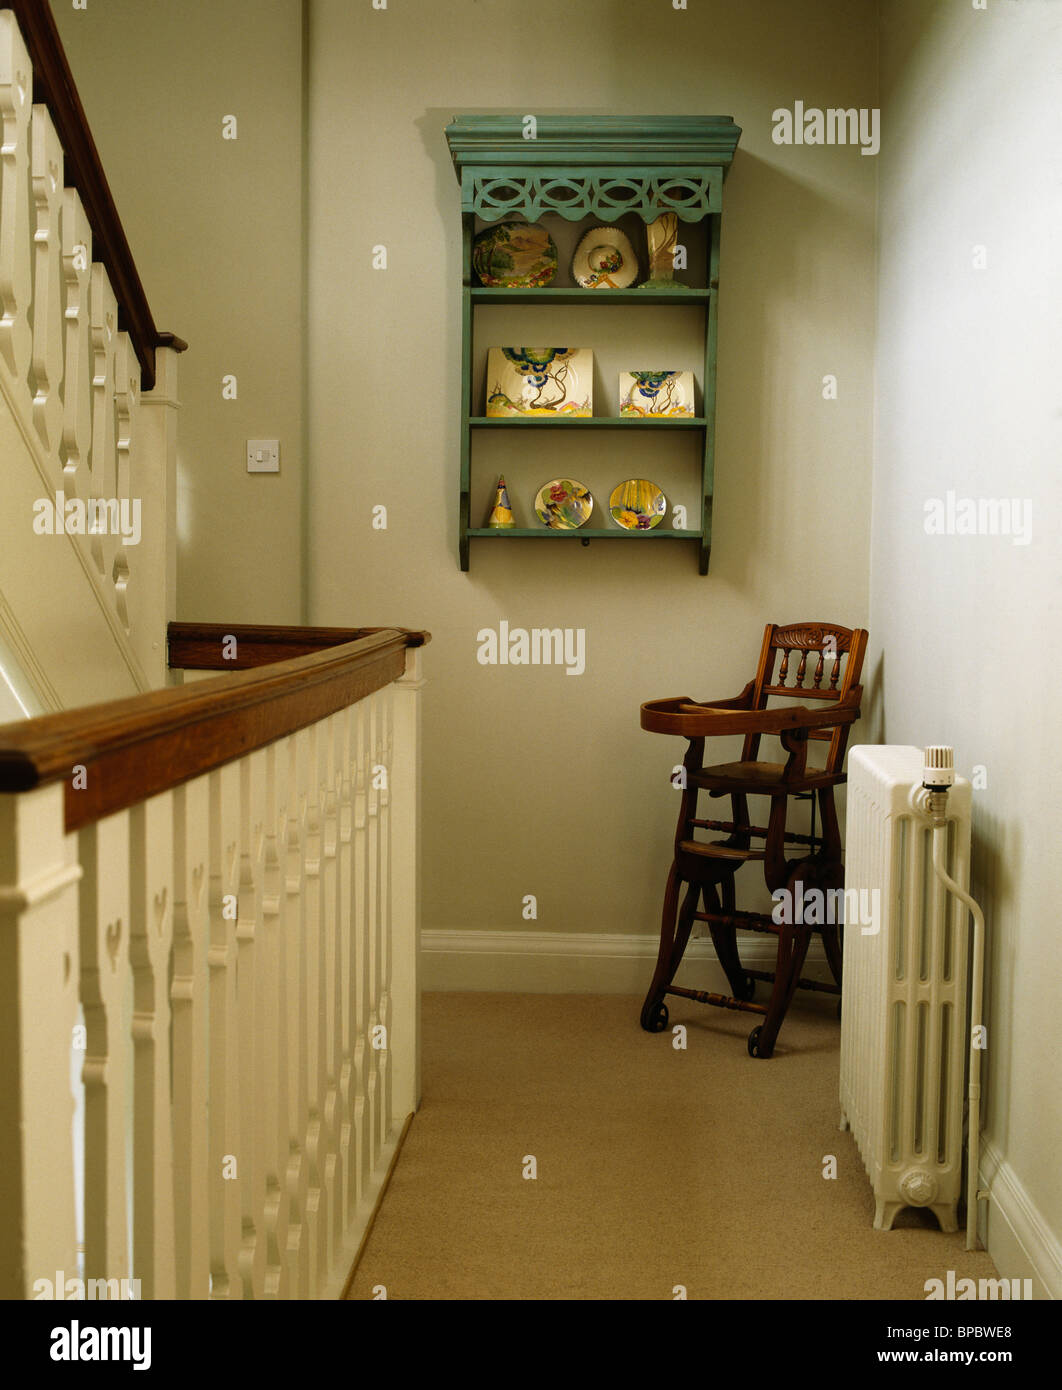 Small green shelves on wall above child's antique high chair on traditional  cream landing - Small Green Shelves On Wall Above Child's Antique High Chair On